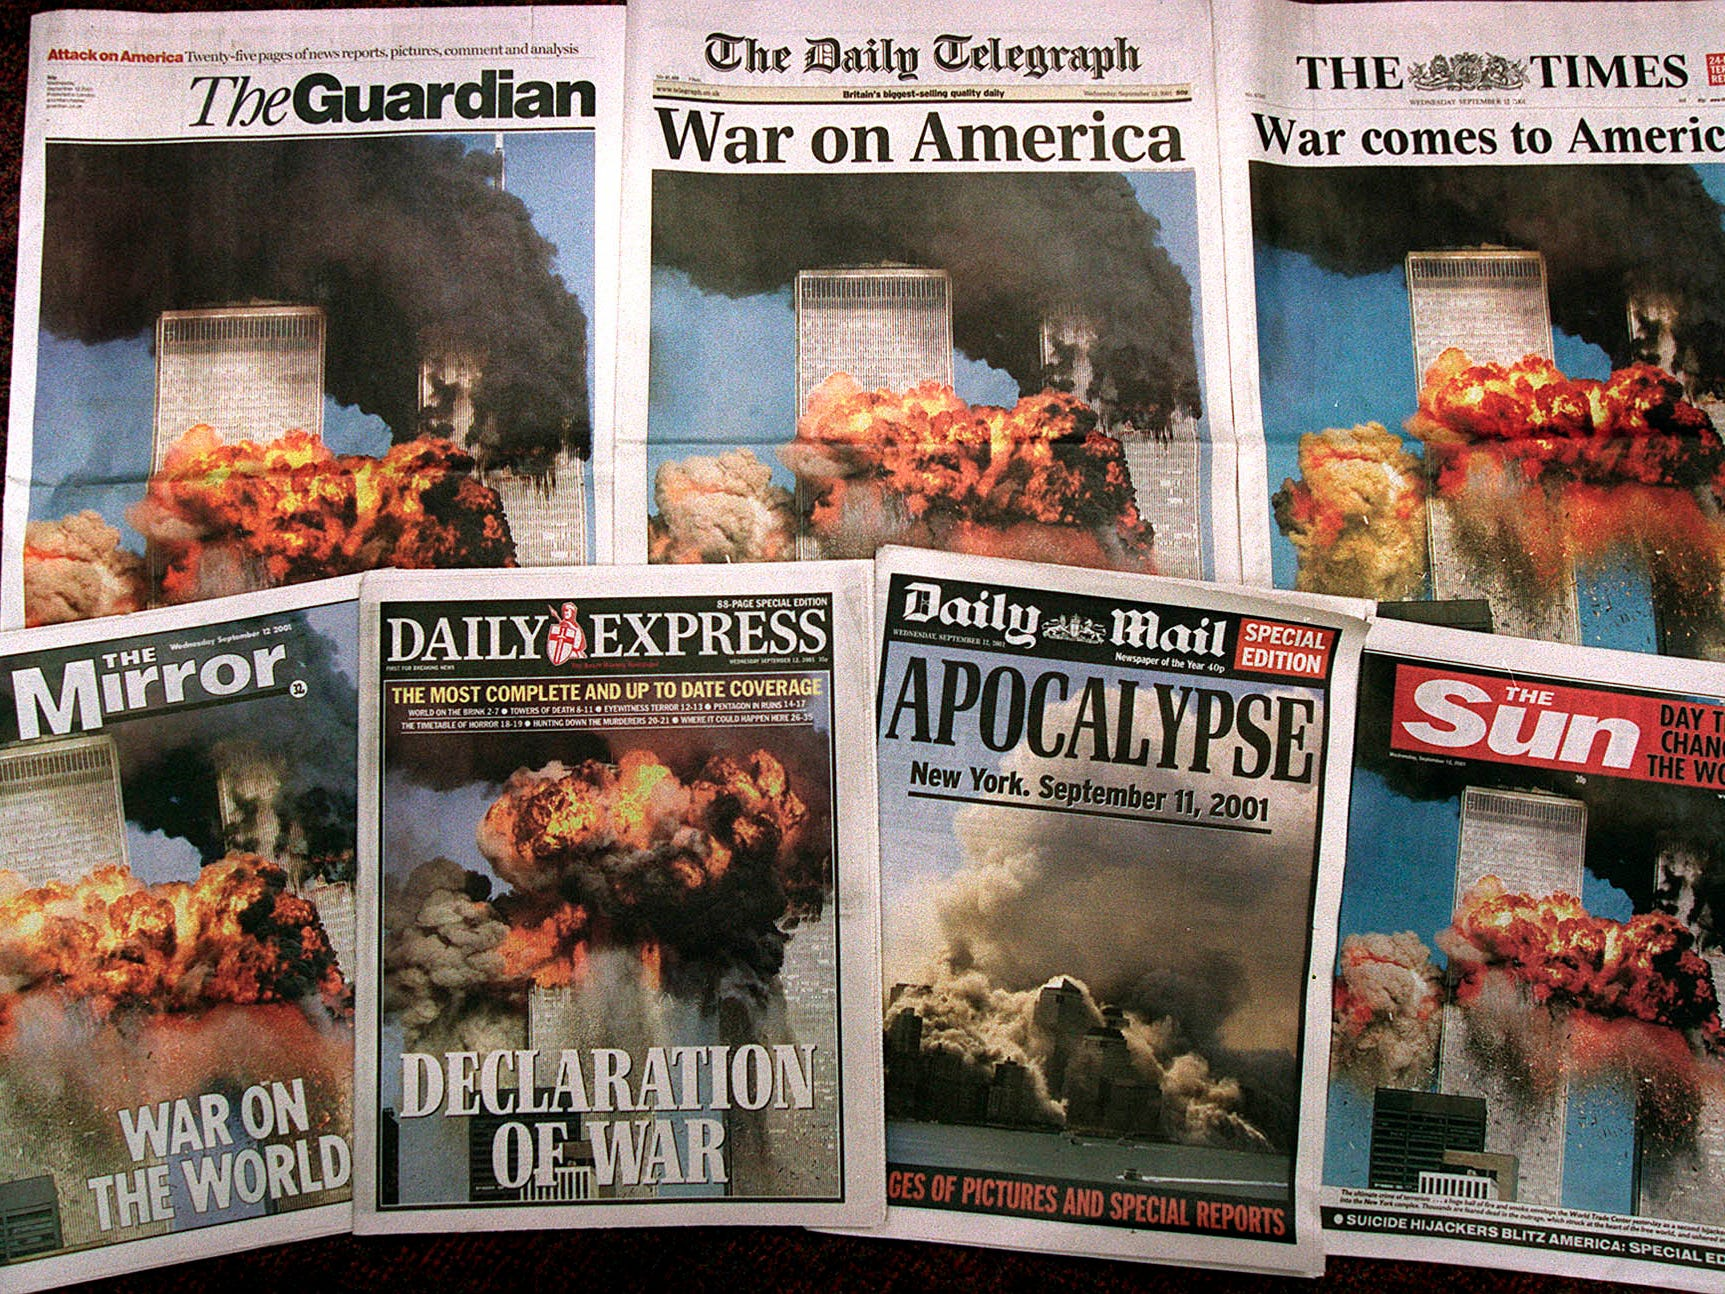 Front pages of the British national newspapers are seen Wednesday, Sept. 12, 2001. Photos and stories of the attacks in New York and Washington dominated the front pages. (AP Photo/Martin Cleaver)